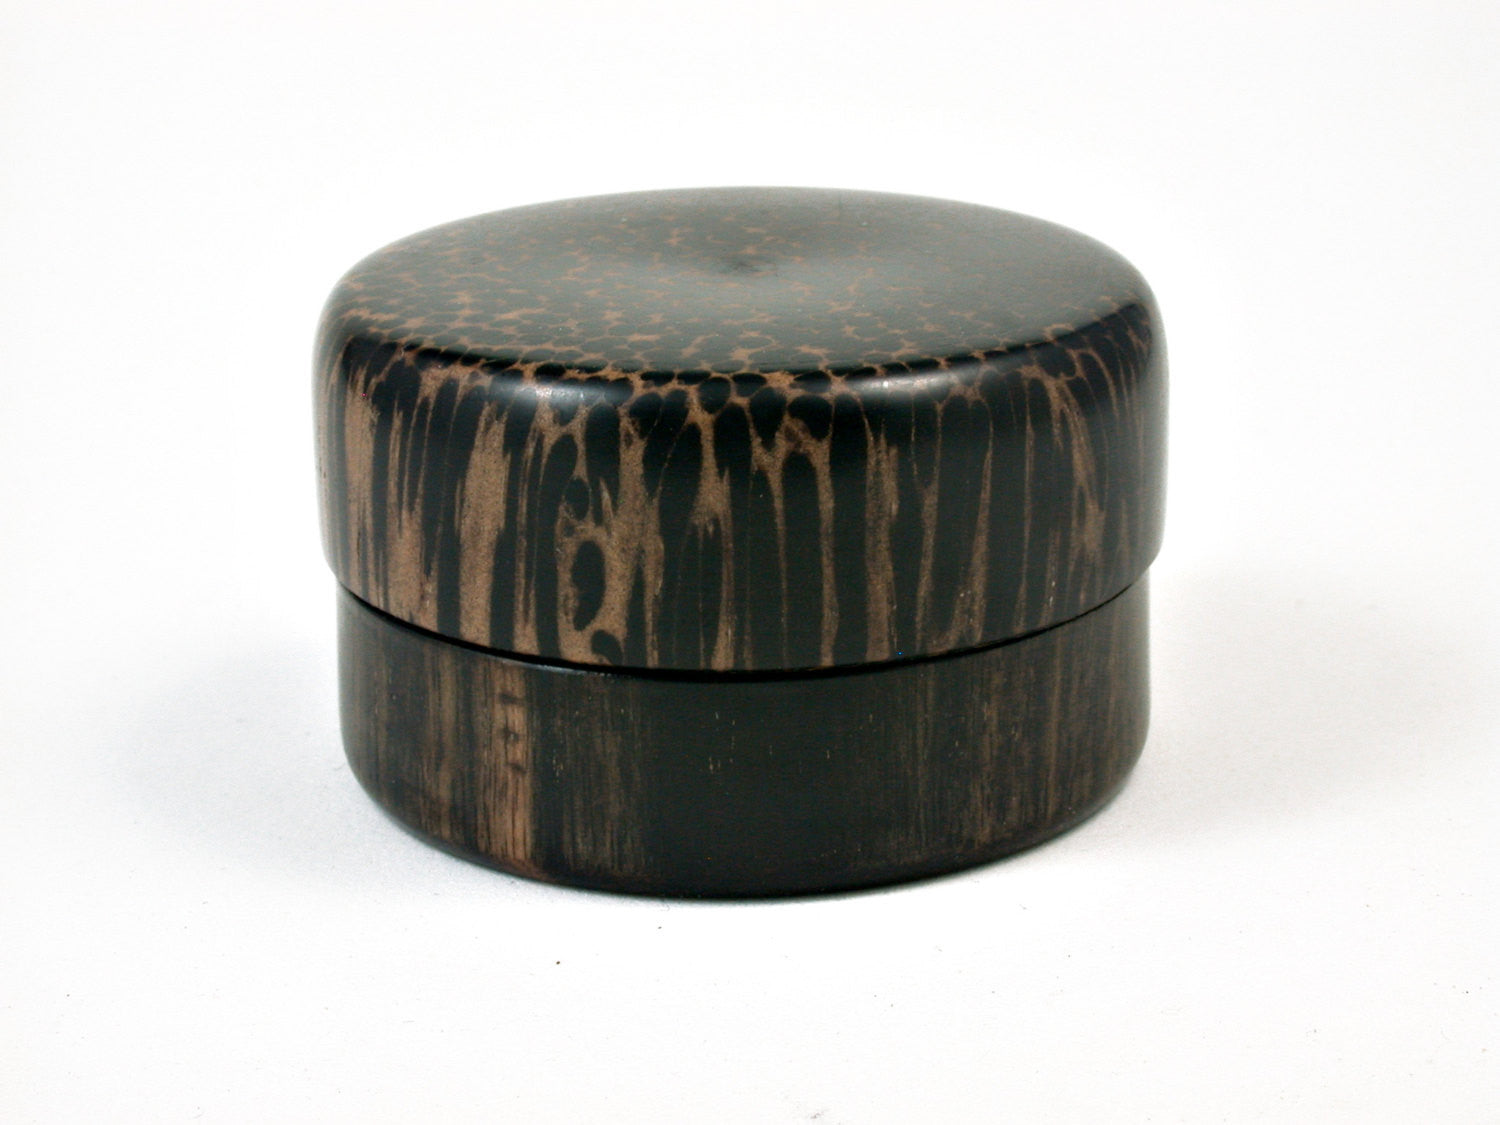 LV-1689  Mun Ebony & Black Palm Wooden Flat Pill Box, Ring Holder, Jewelry Box-SCREW CAP